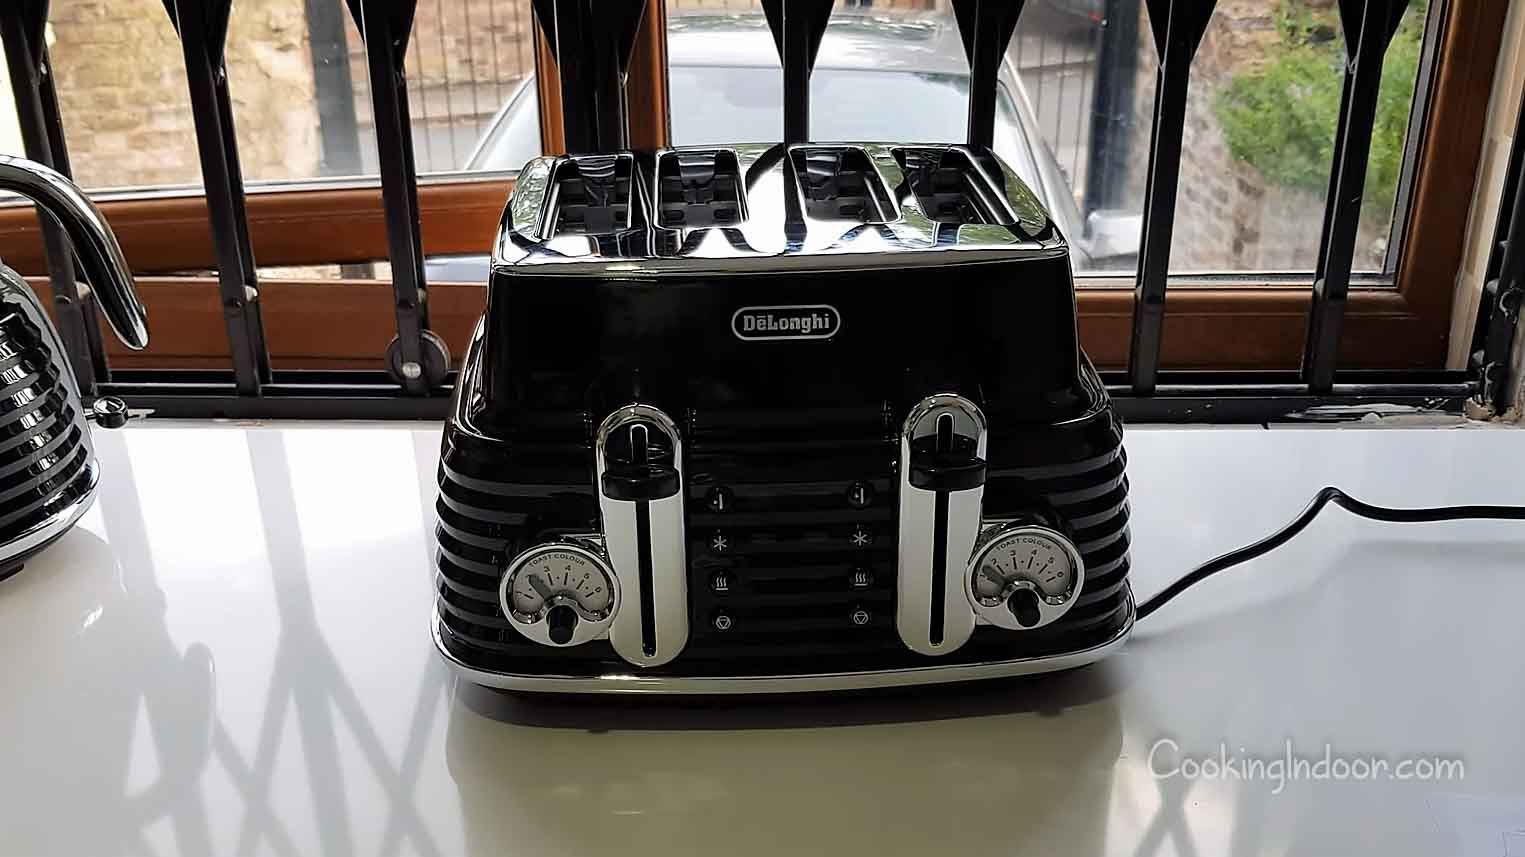 Best Delonghi toaster